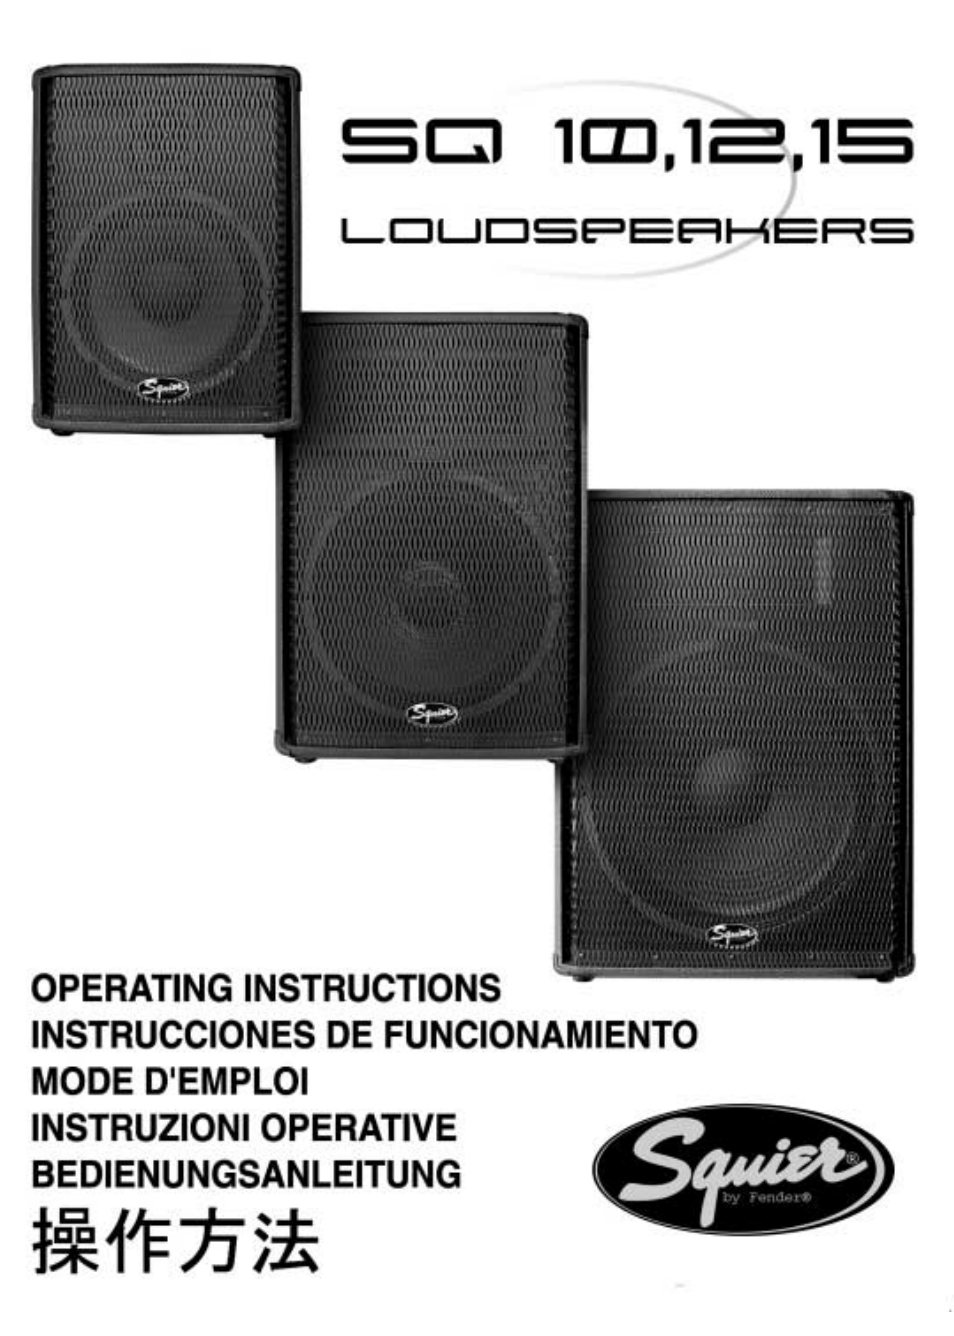 fender squier sq 10 user manual 8 pages also for squier sq 12 rh manualsdir com Fender Squier Guitar Fender Squier Mini